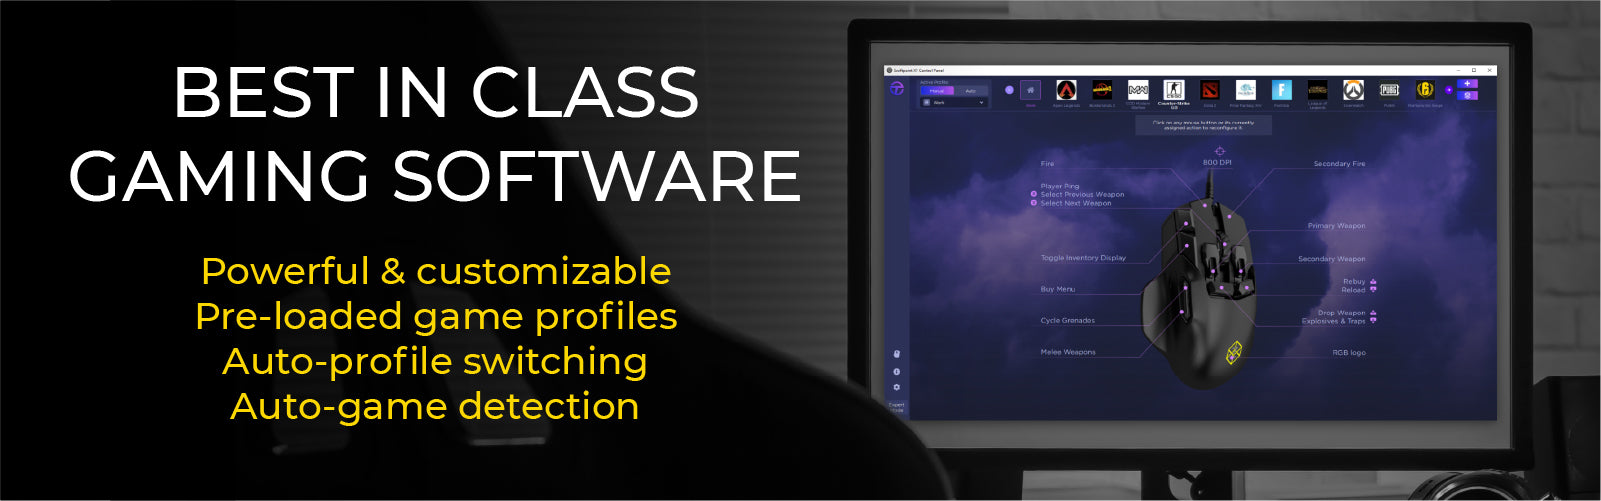 Best in class gaming software